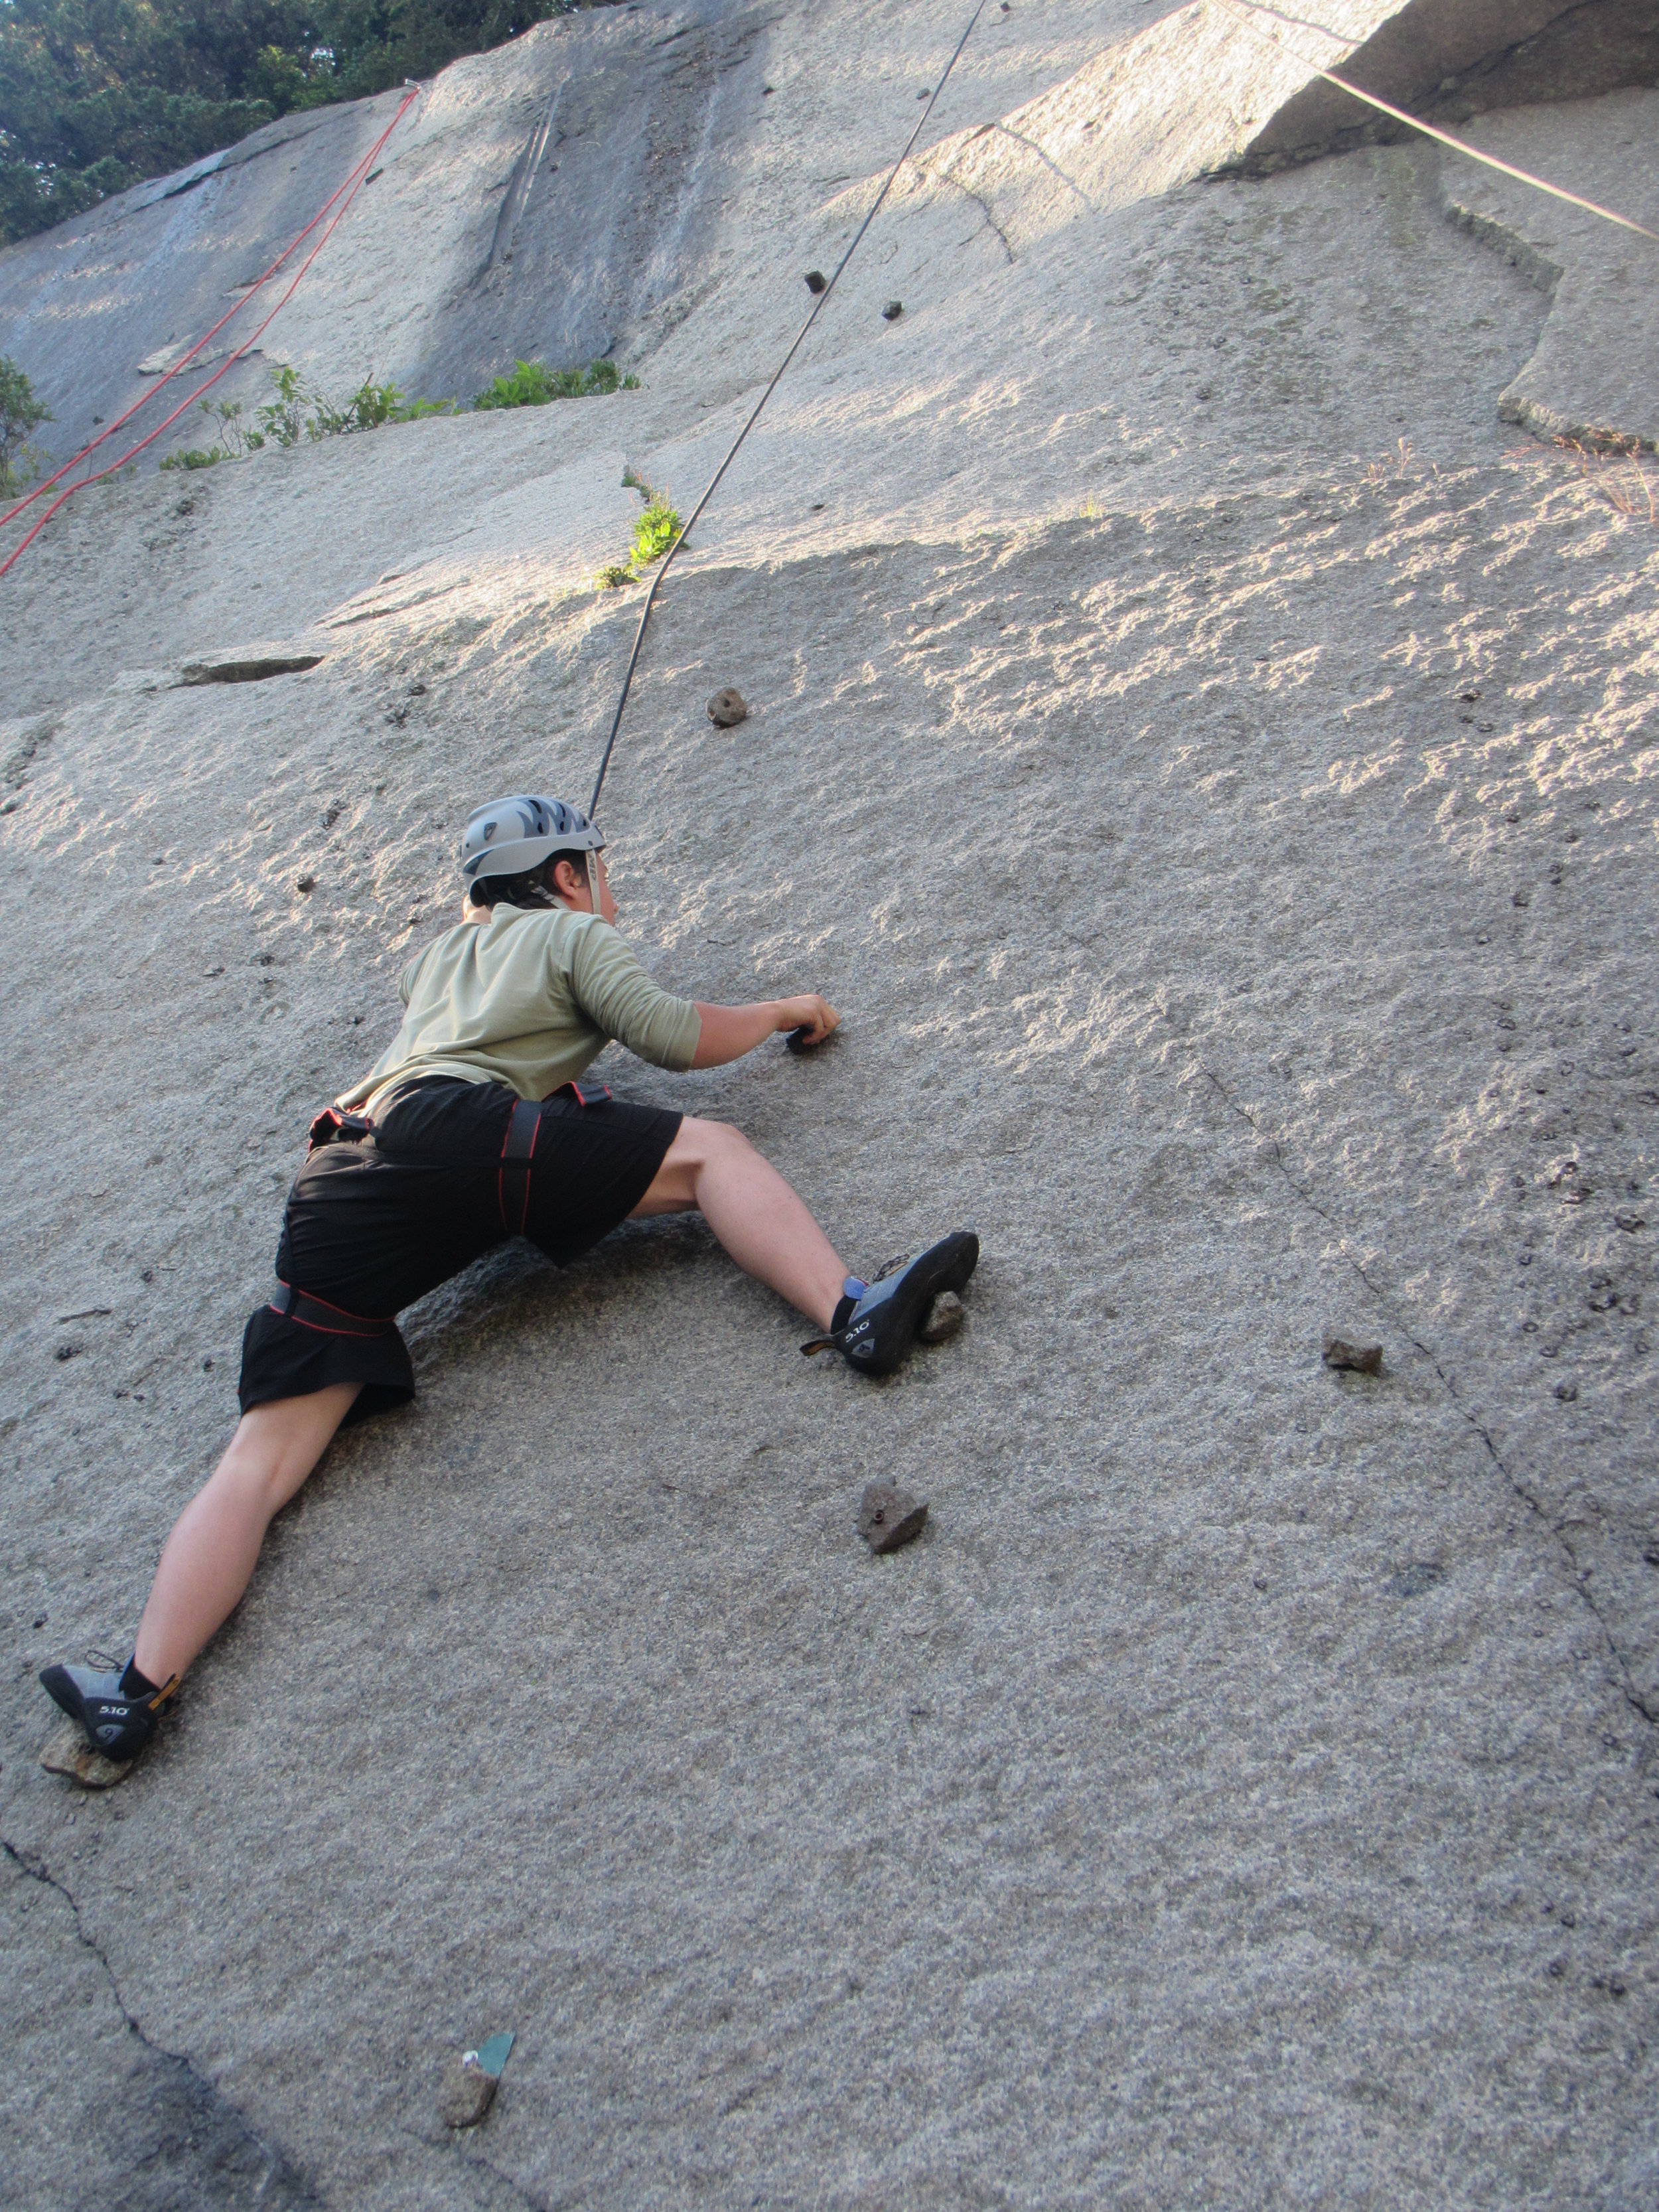 HS_FieldMarine_Climb on!!.jpg